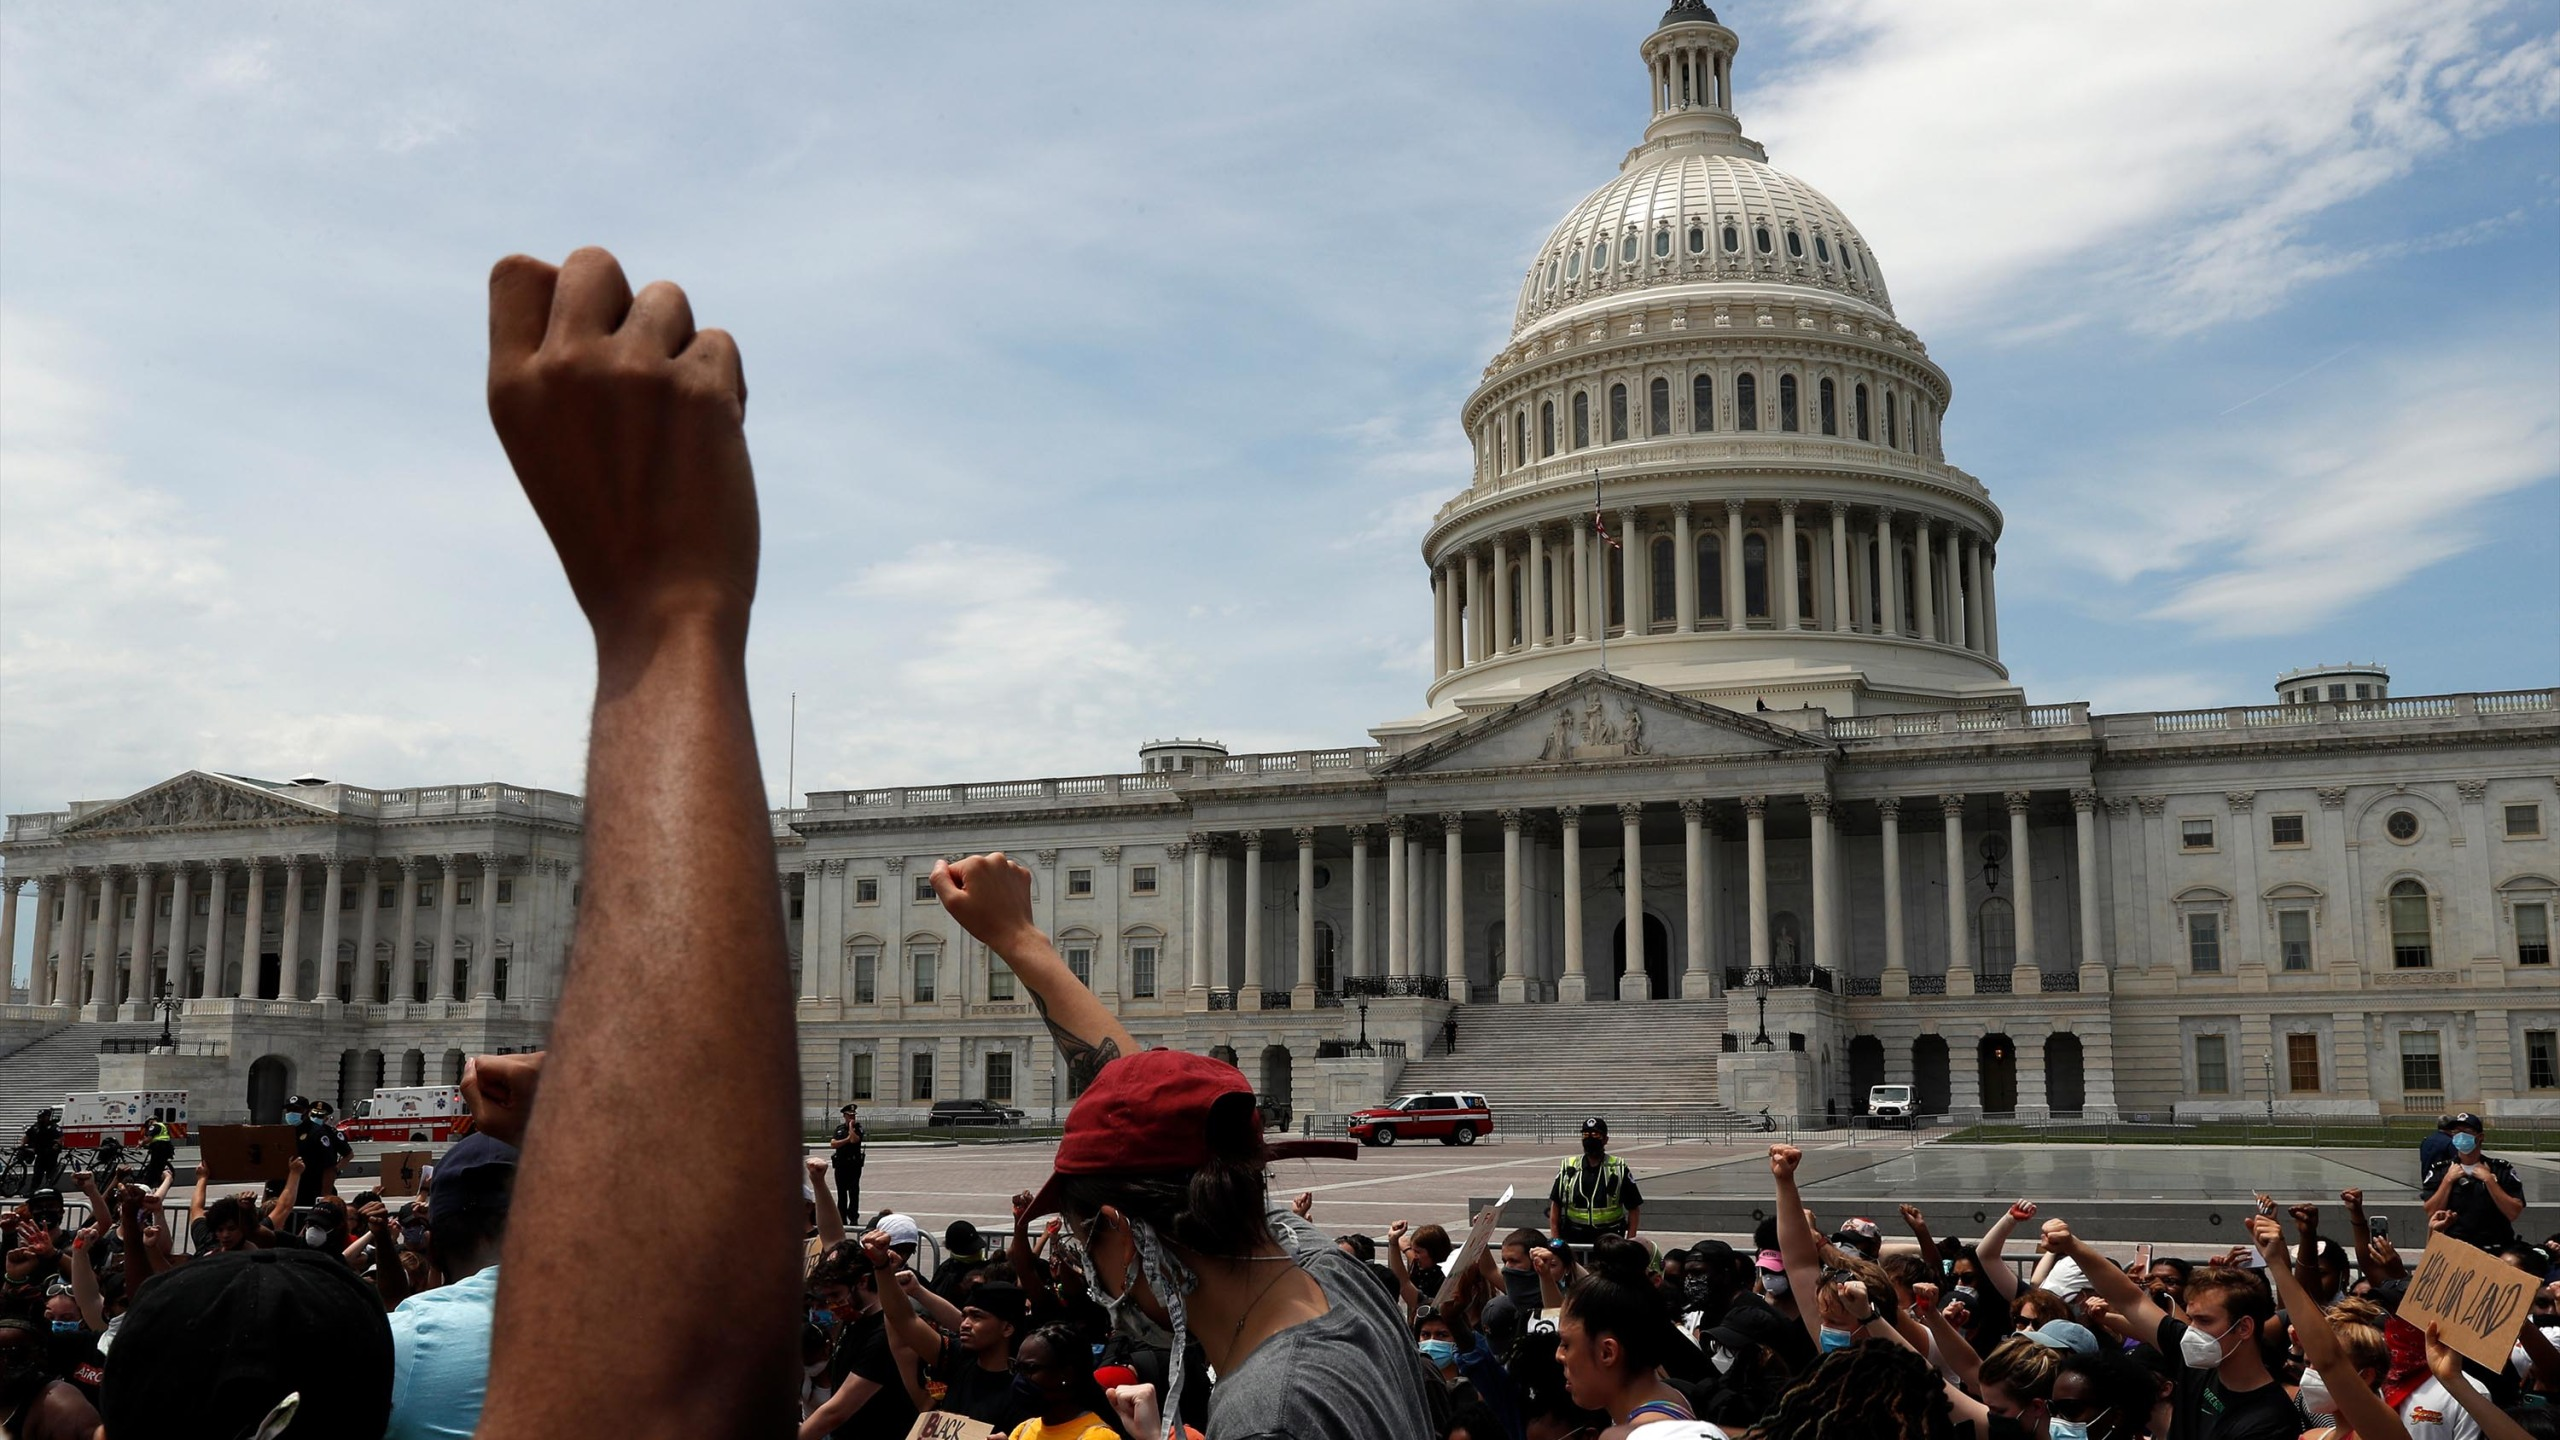 Demonstrators protest the death of George Floyd as they gather Wednesday, June 3, 2020, on the East side of the U.S. Capitol in Washington. (Jacquelyn Martin/AP)